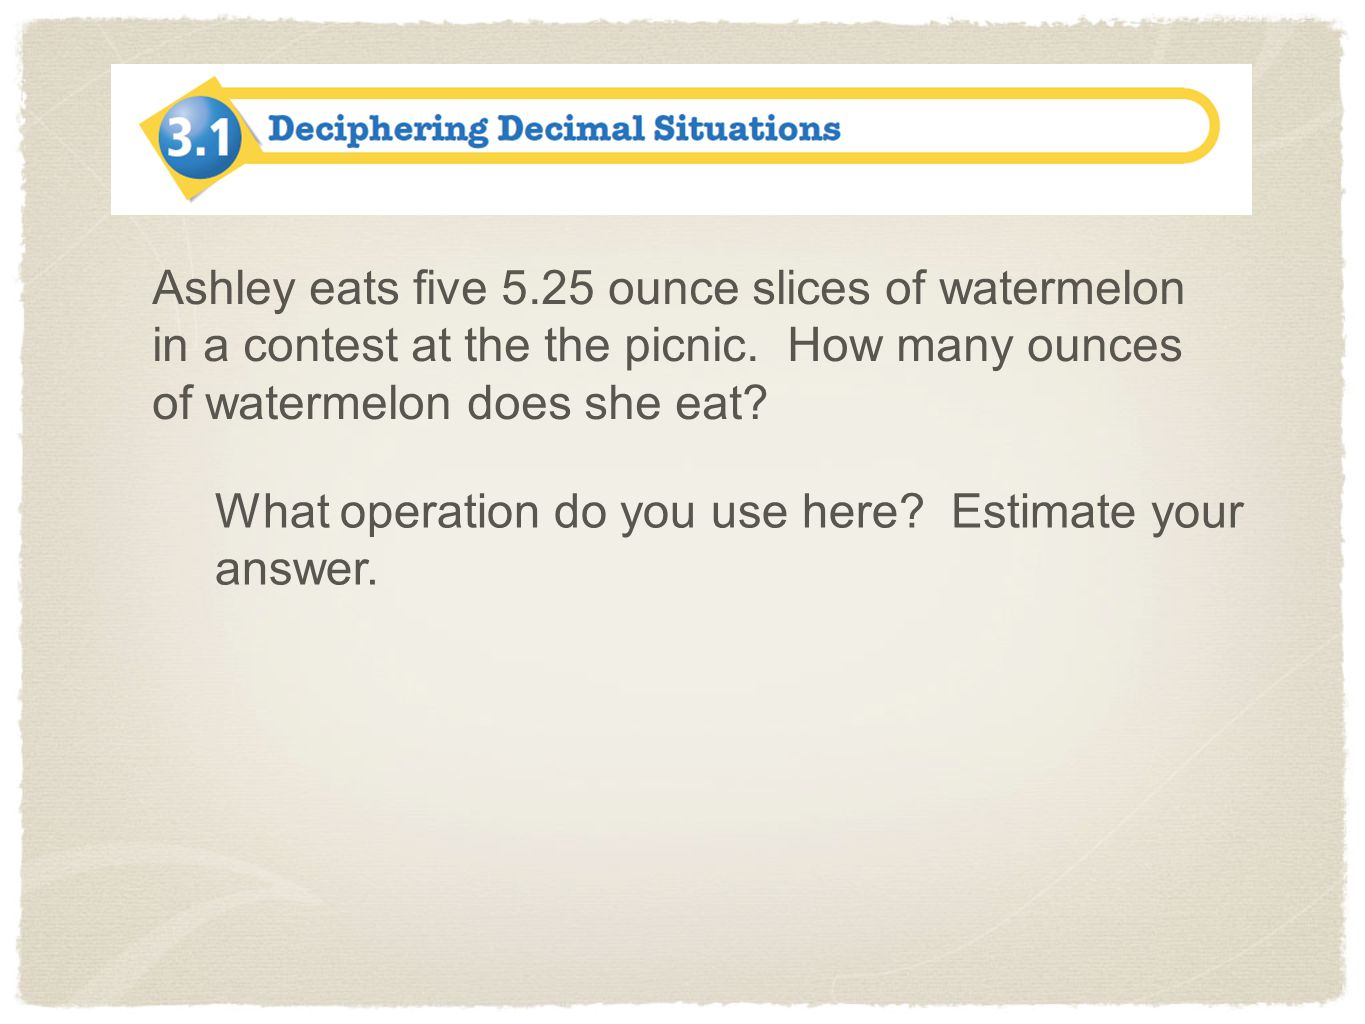 Ashley eats five 5.25 ounce slices of watermelon in a contest at the the picnic. How many ounces of watermelon does she eat